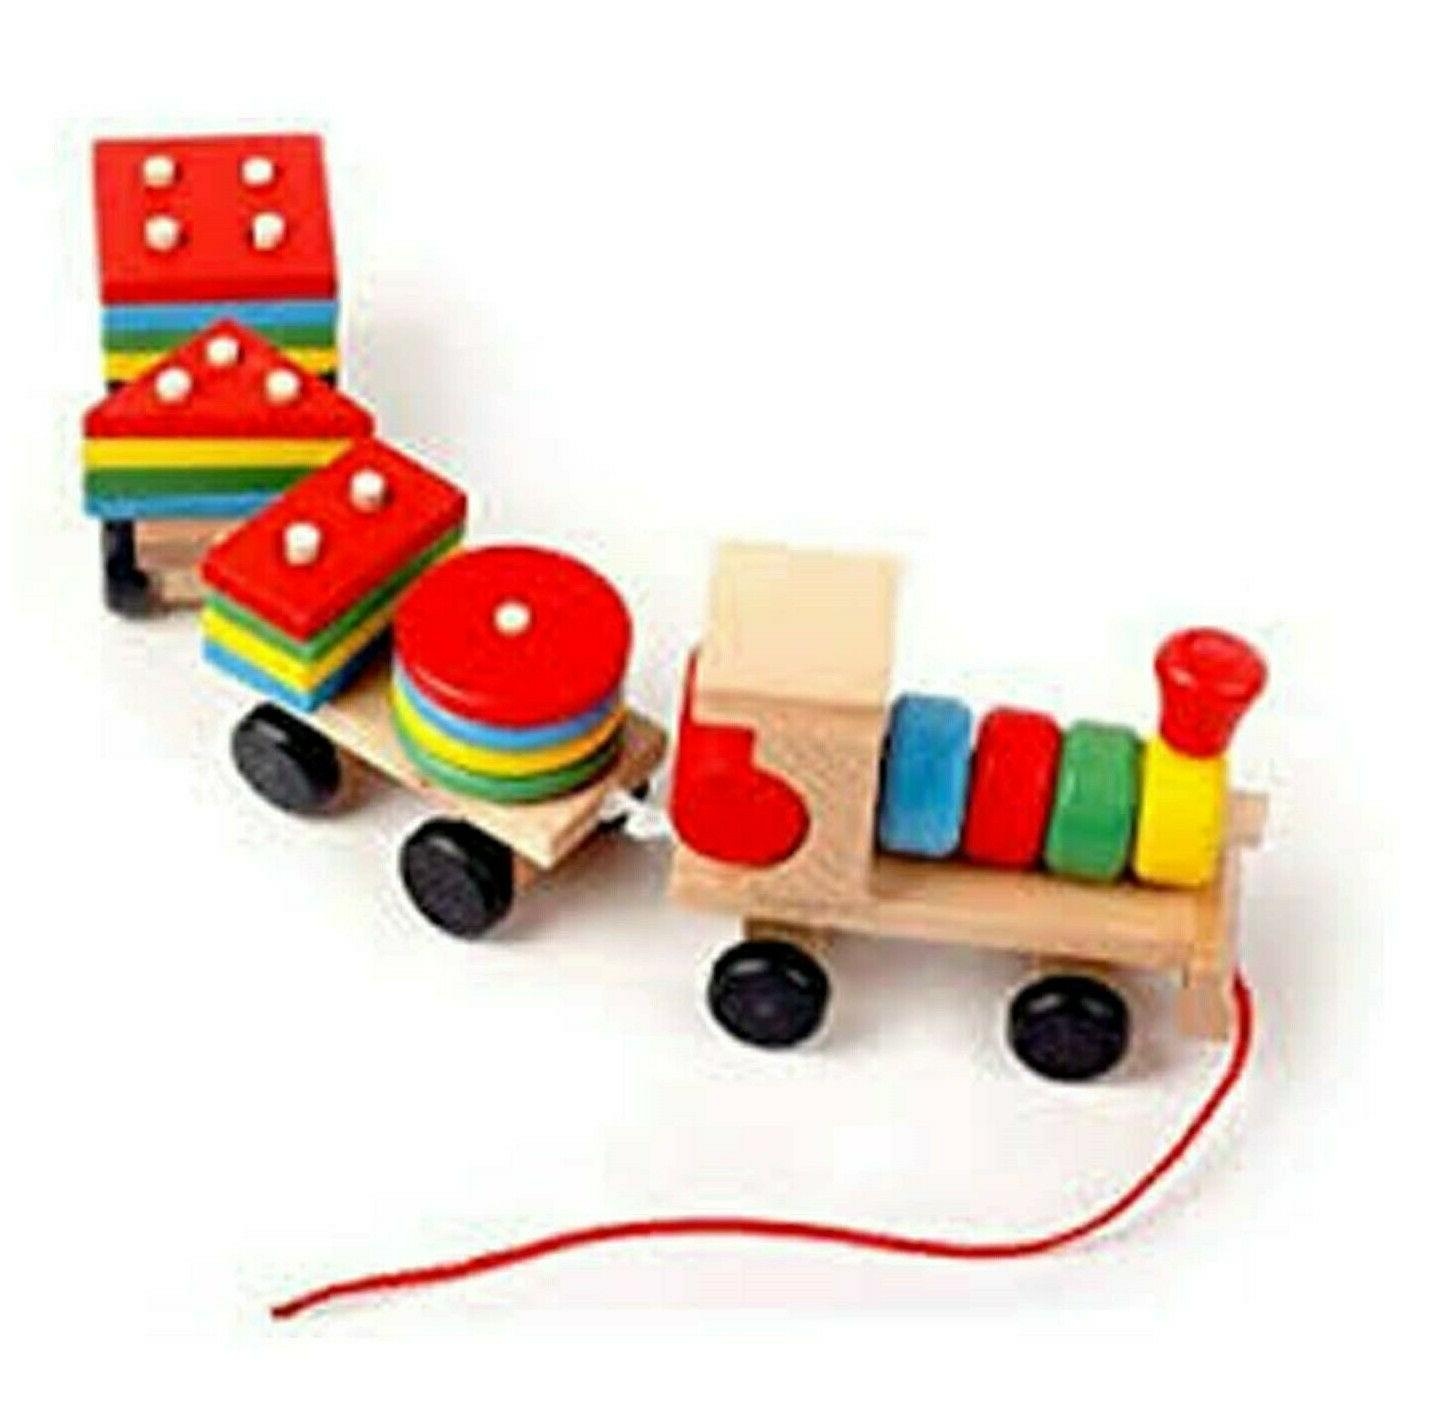 kids shapes colors learning toy wood fun